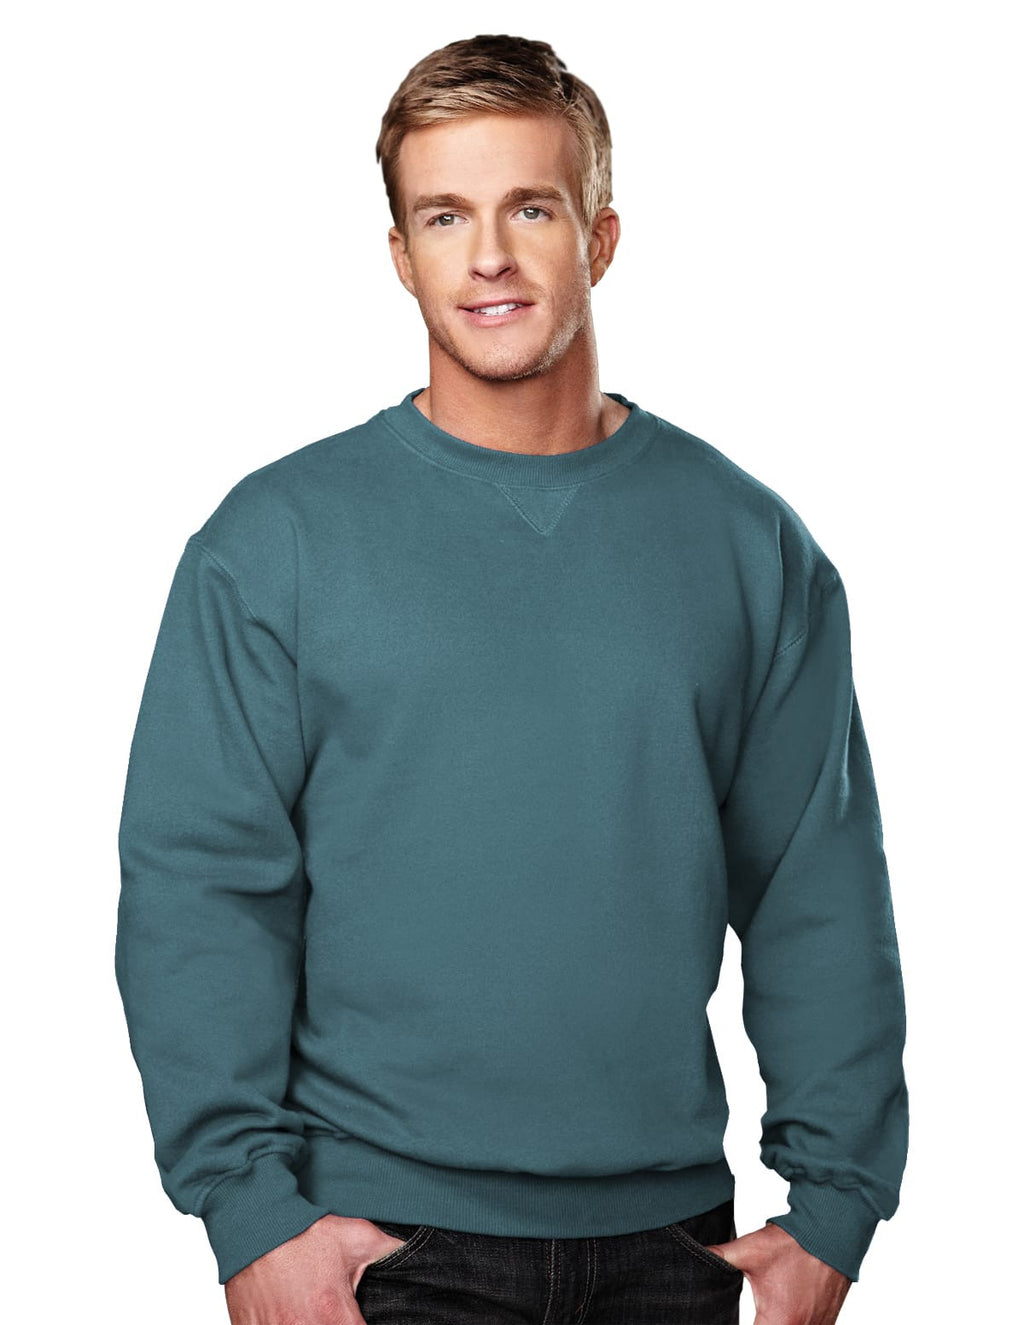 Tri-Mountain 10oz Heavyweight Crew Sweatshirt-5